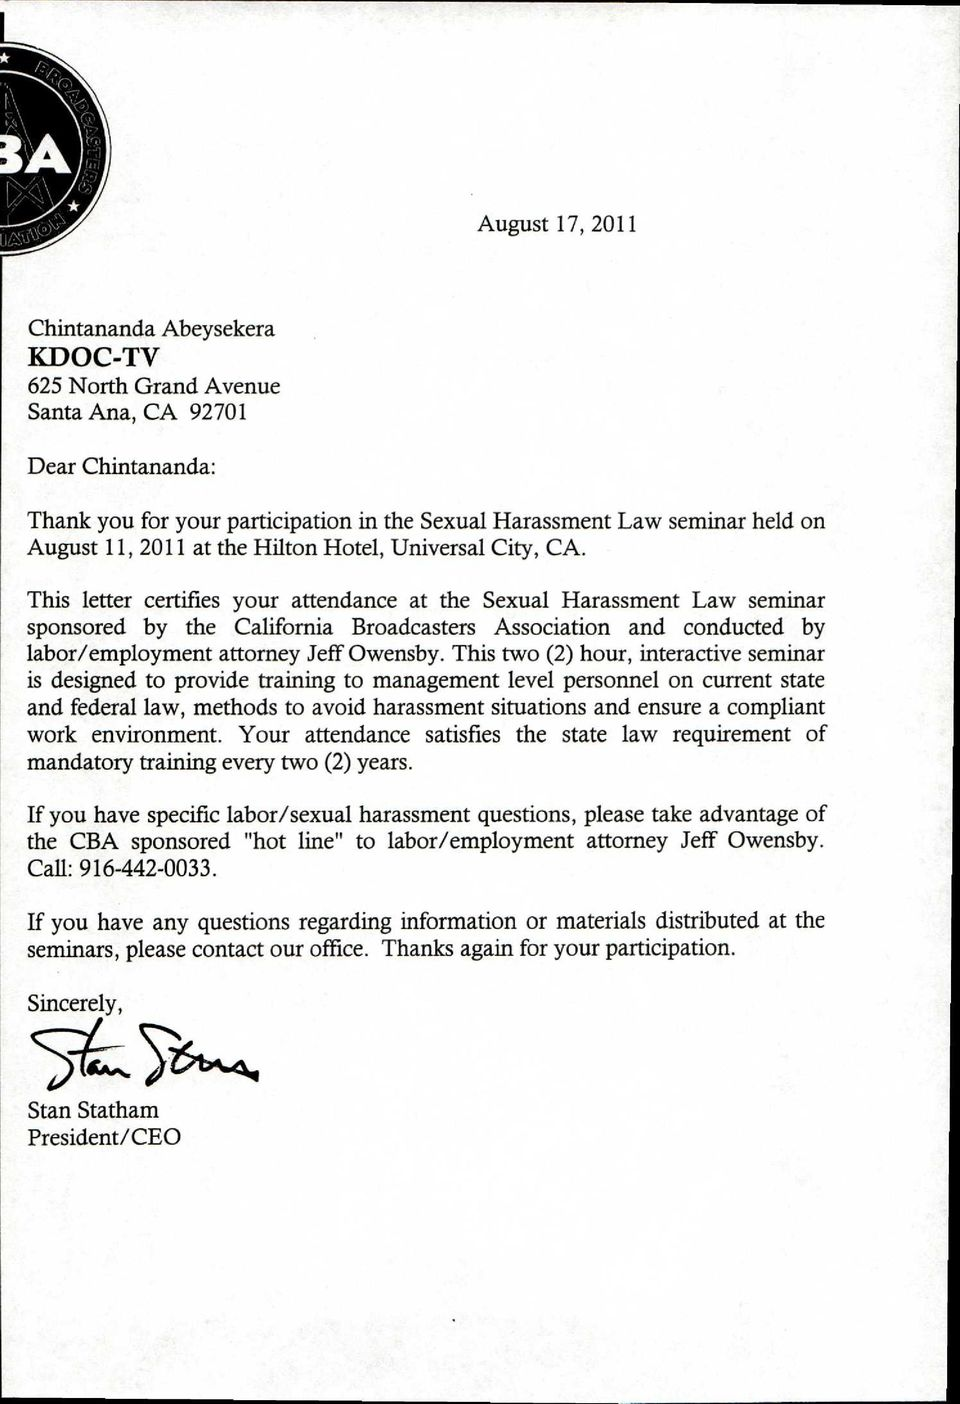 This letter certifies your attendance at the Sexual Harassment Law seminar sponsored by the California Broadcasters Association and conducted by labor/employment attorney Jeff Owensby.